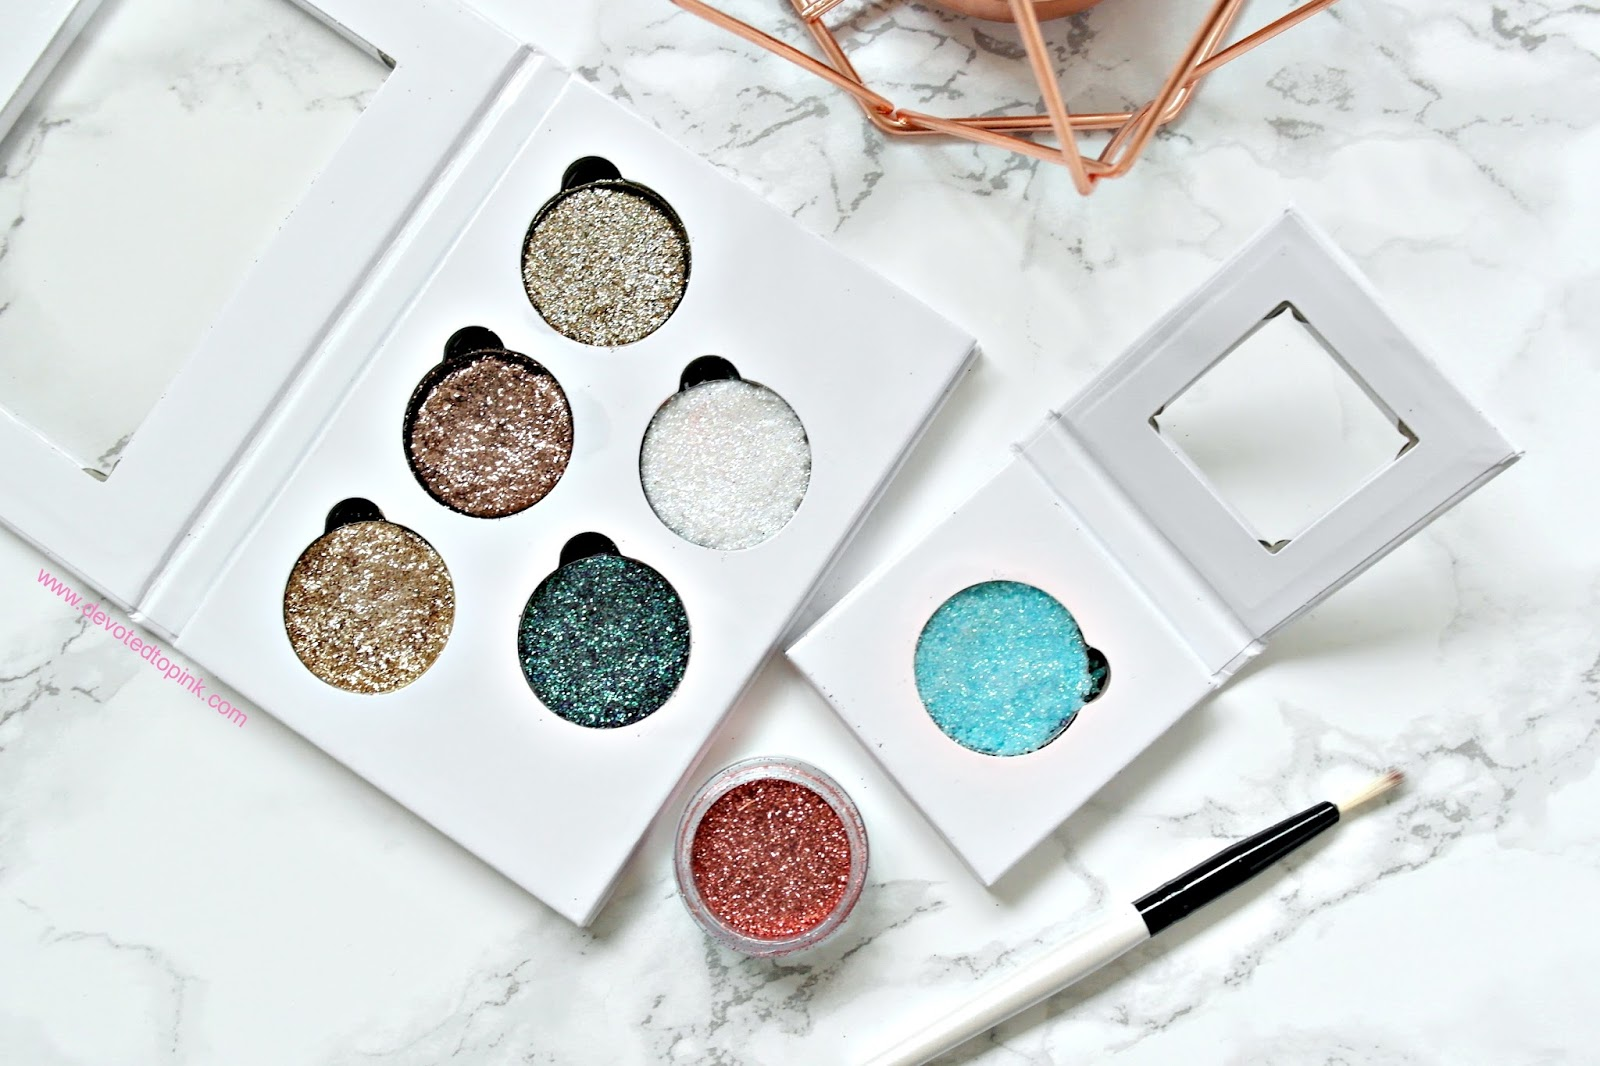 glittereyes, niji cosmetics, glitter, review, glitter lovers, glitter eyeshadow, glitter eyes